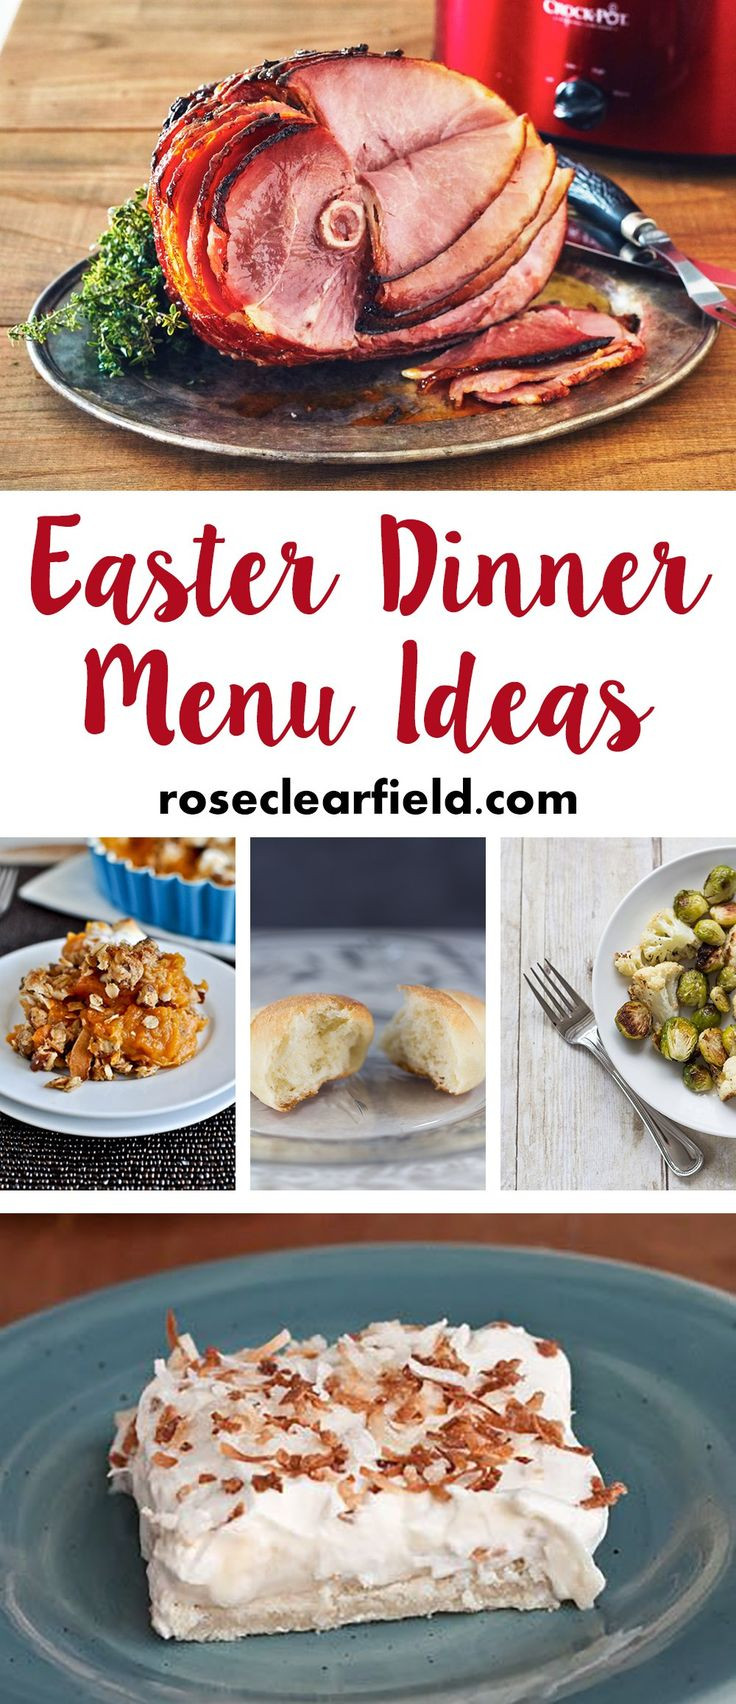 Best Easter Dinner Menu Ideas  25 Best Ideas about Easter Dinner Menu Ideas on Pinterest